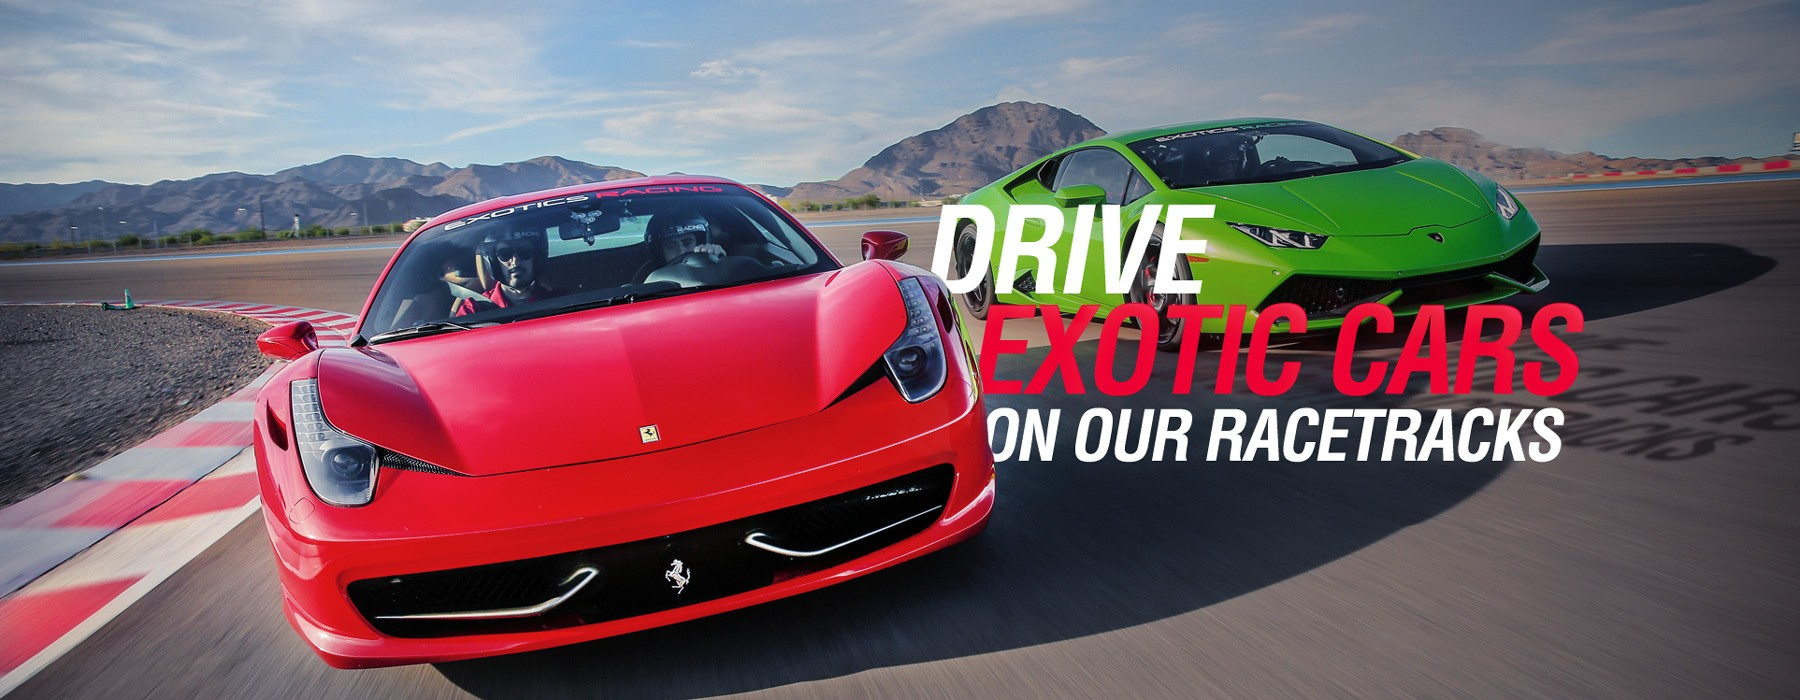 Drive Exotics Cars on a Racetrack